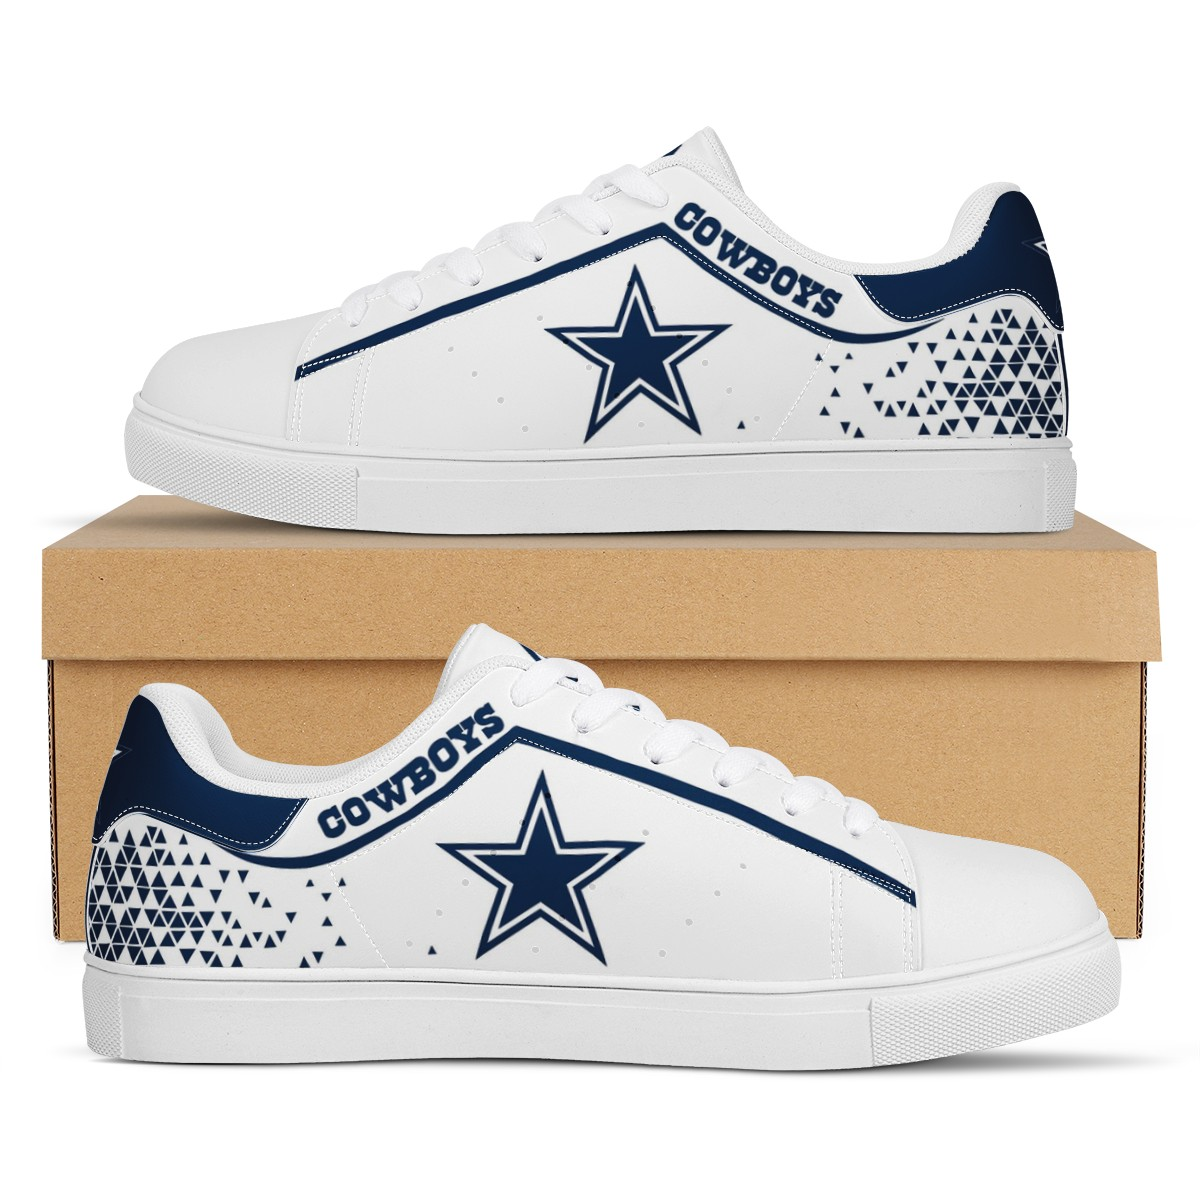 Men's Dallas Cowboys Low Top Leather Sneakers 003